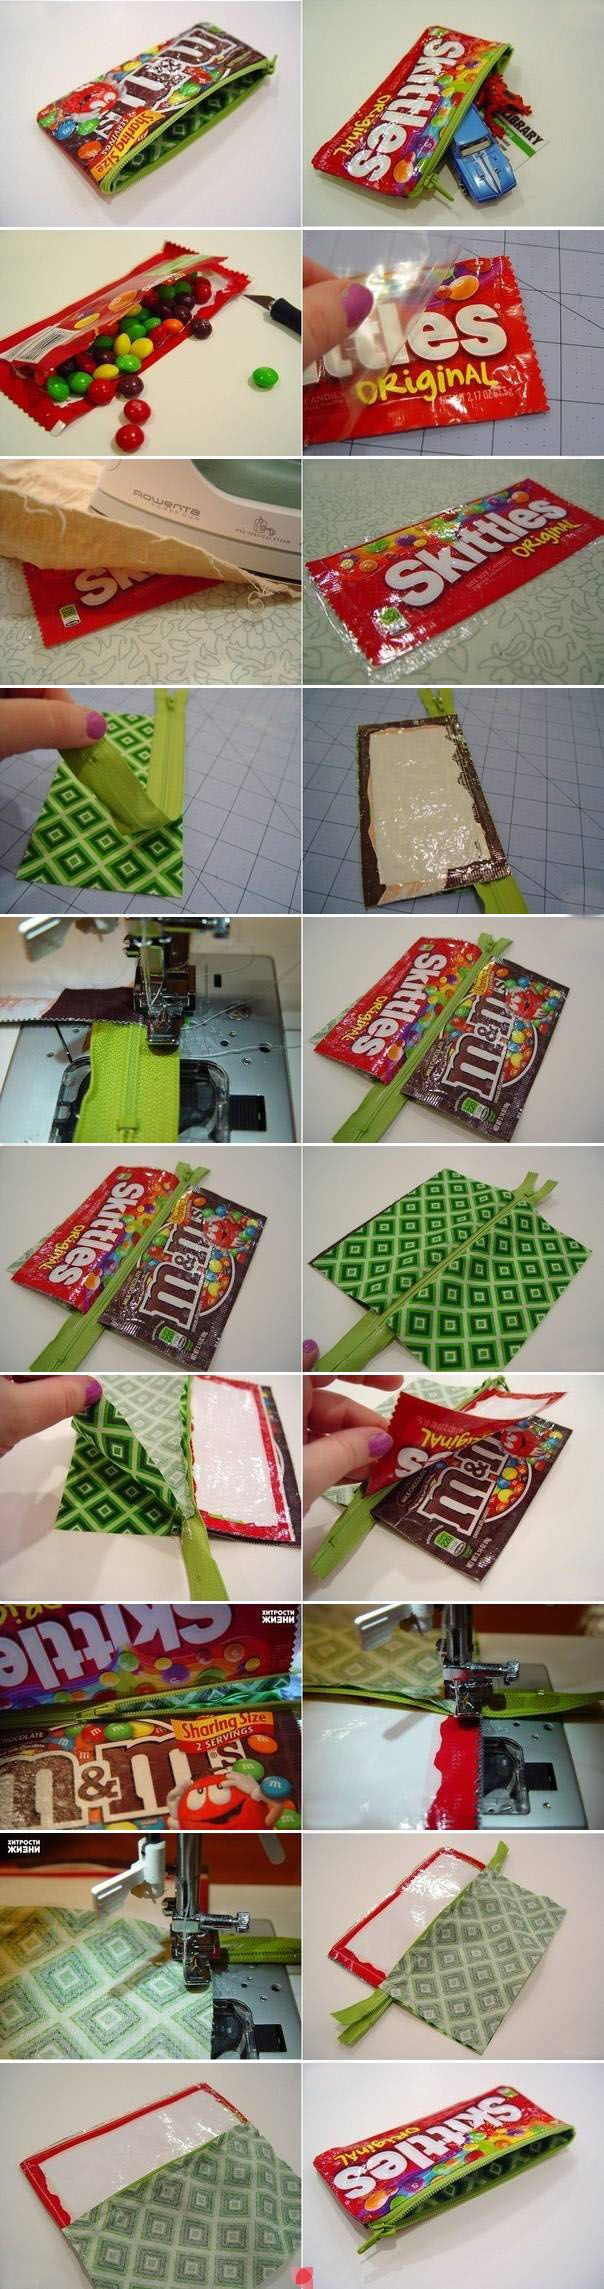 trousse en paquet de skittles/m&m's